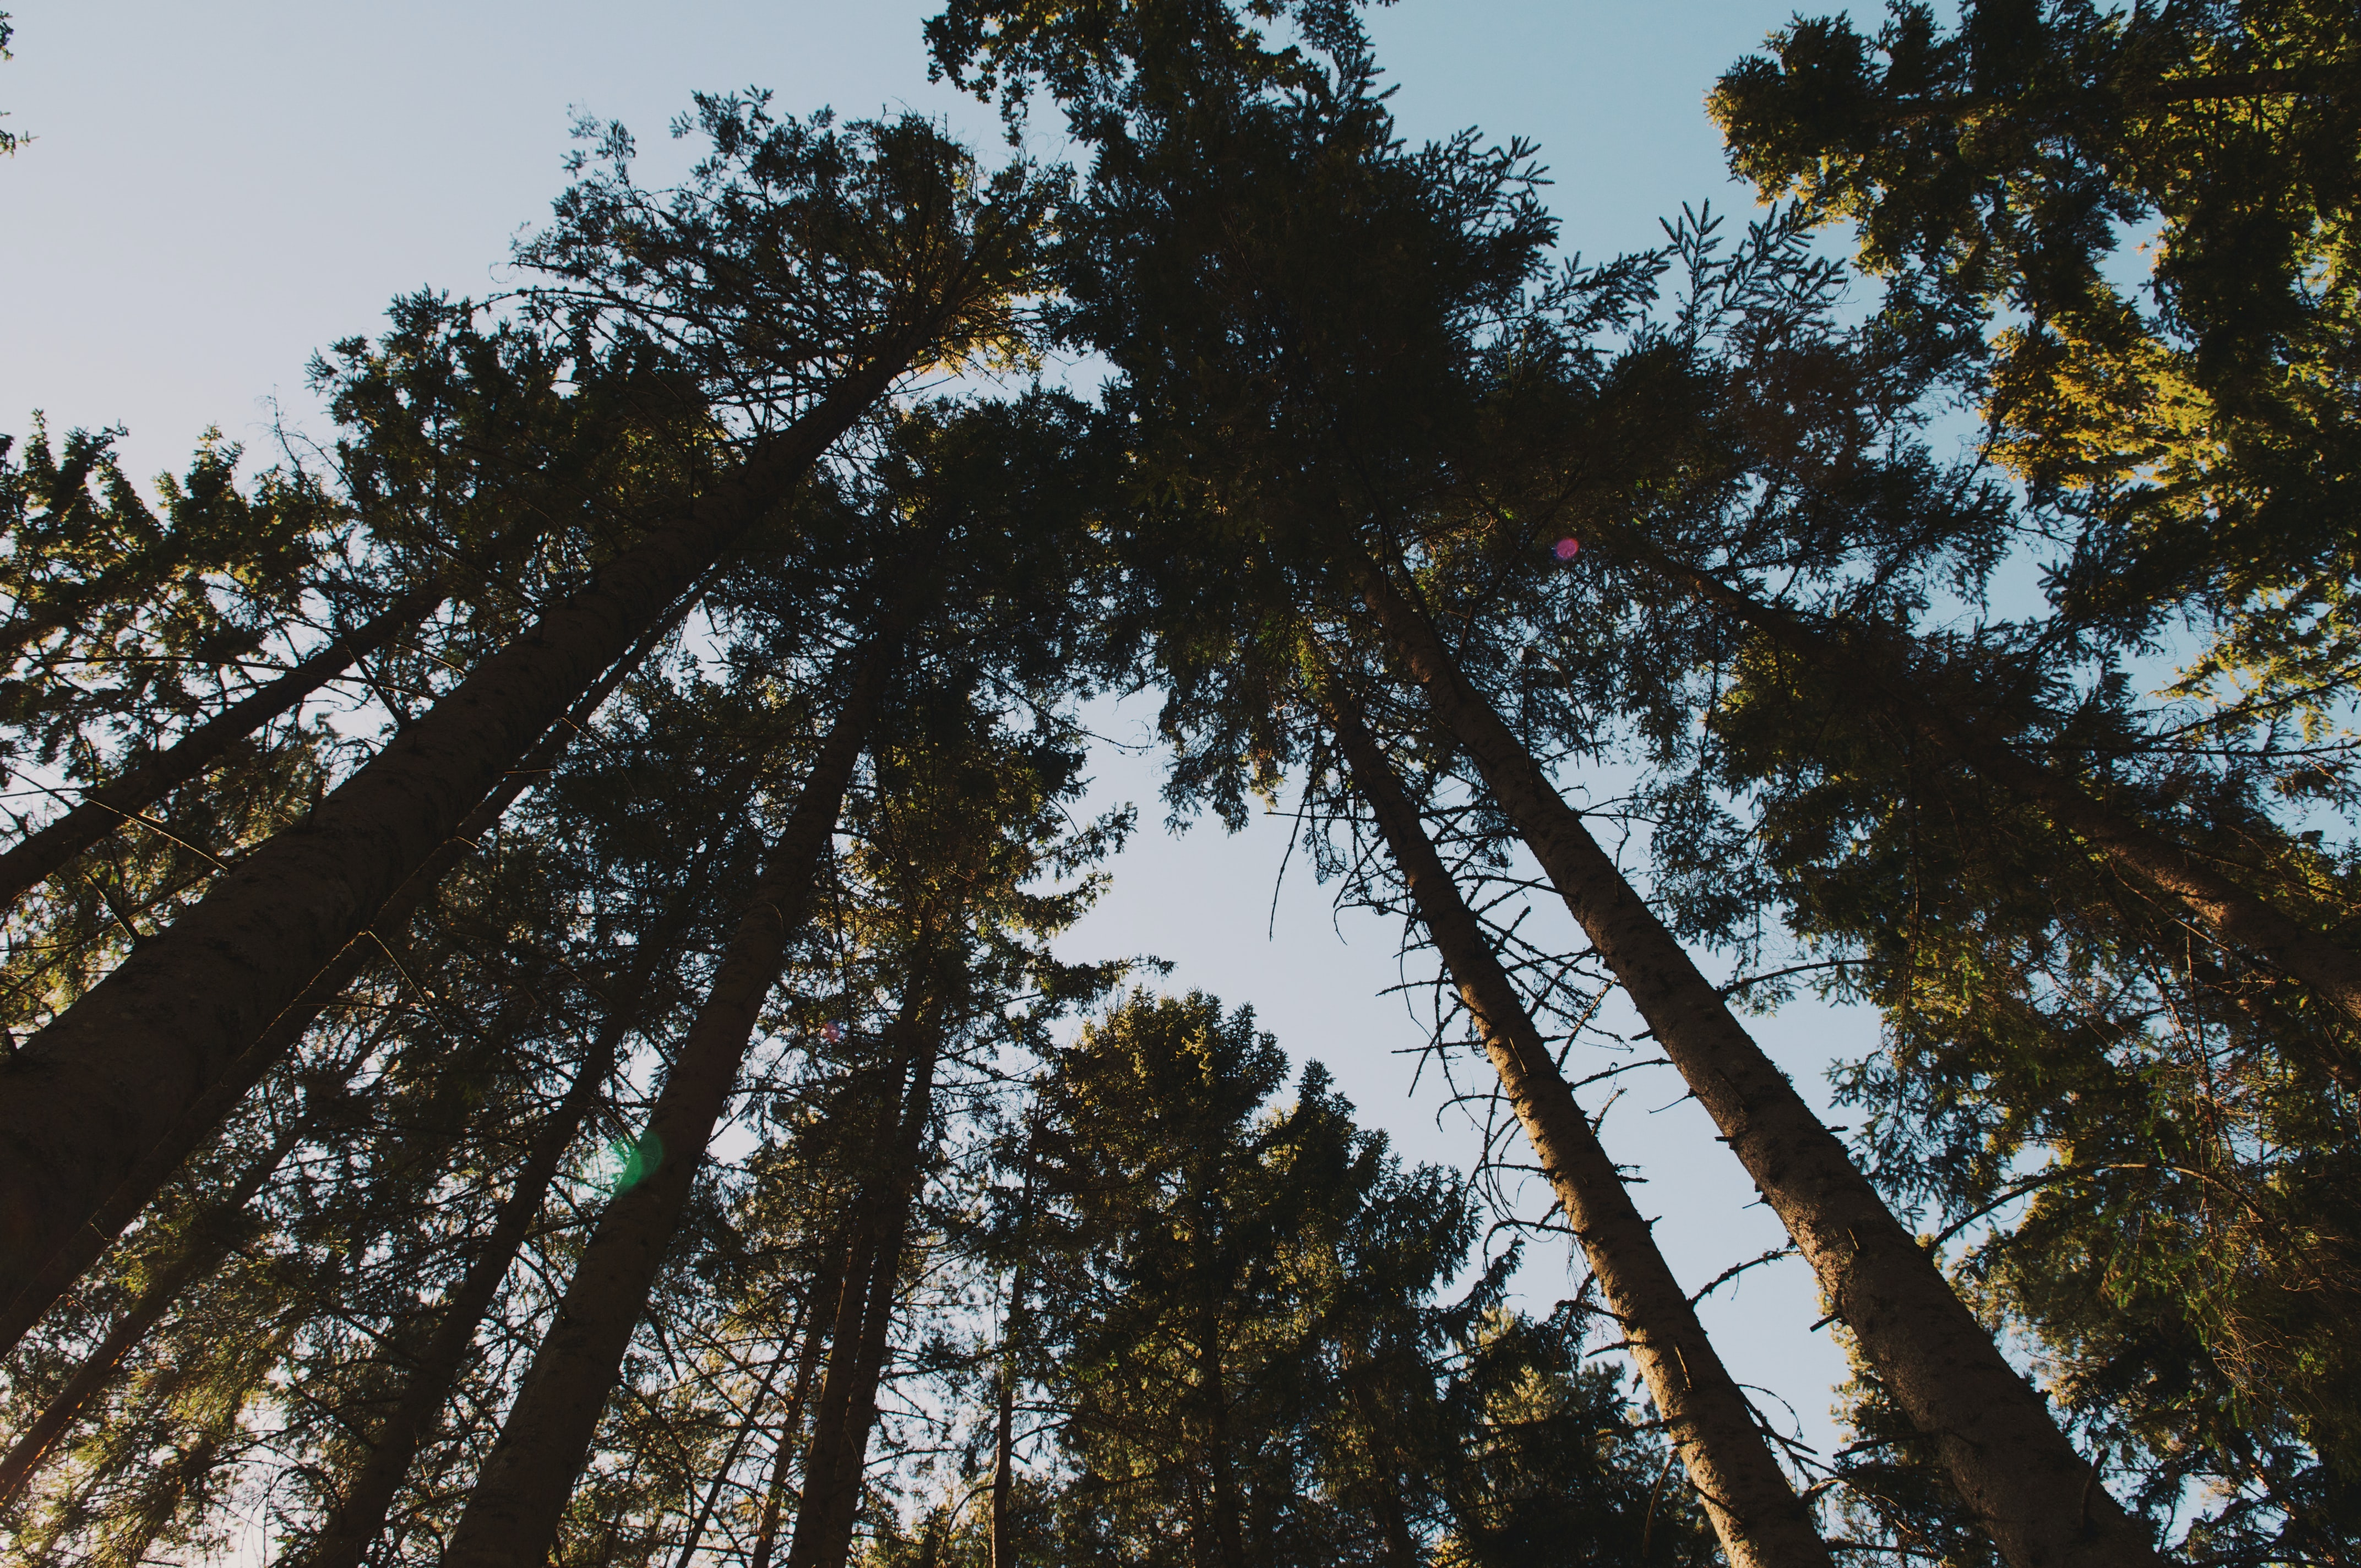 low angle photo of forest trees under blue sky